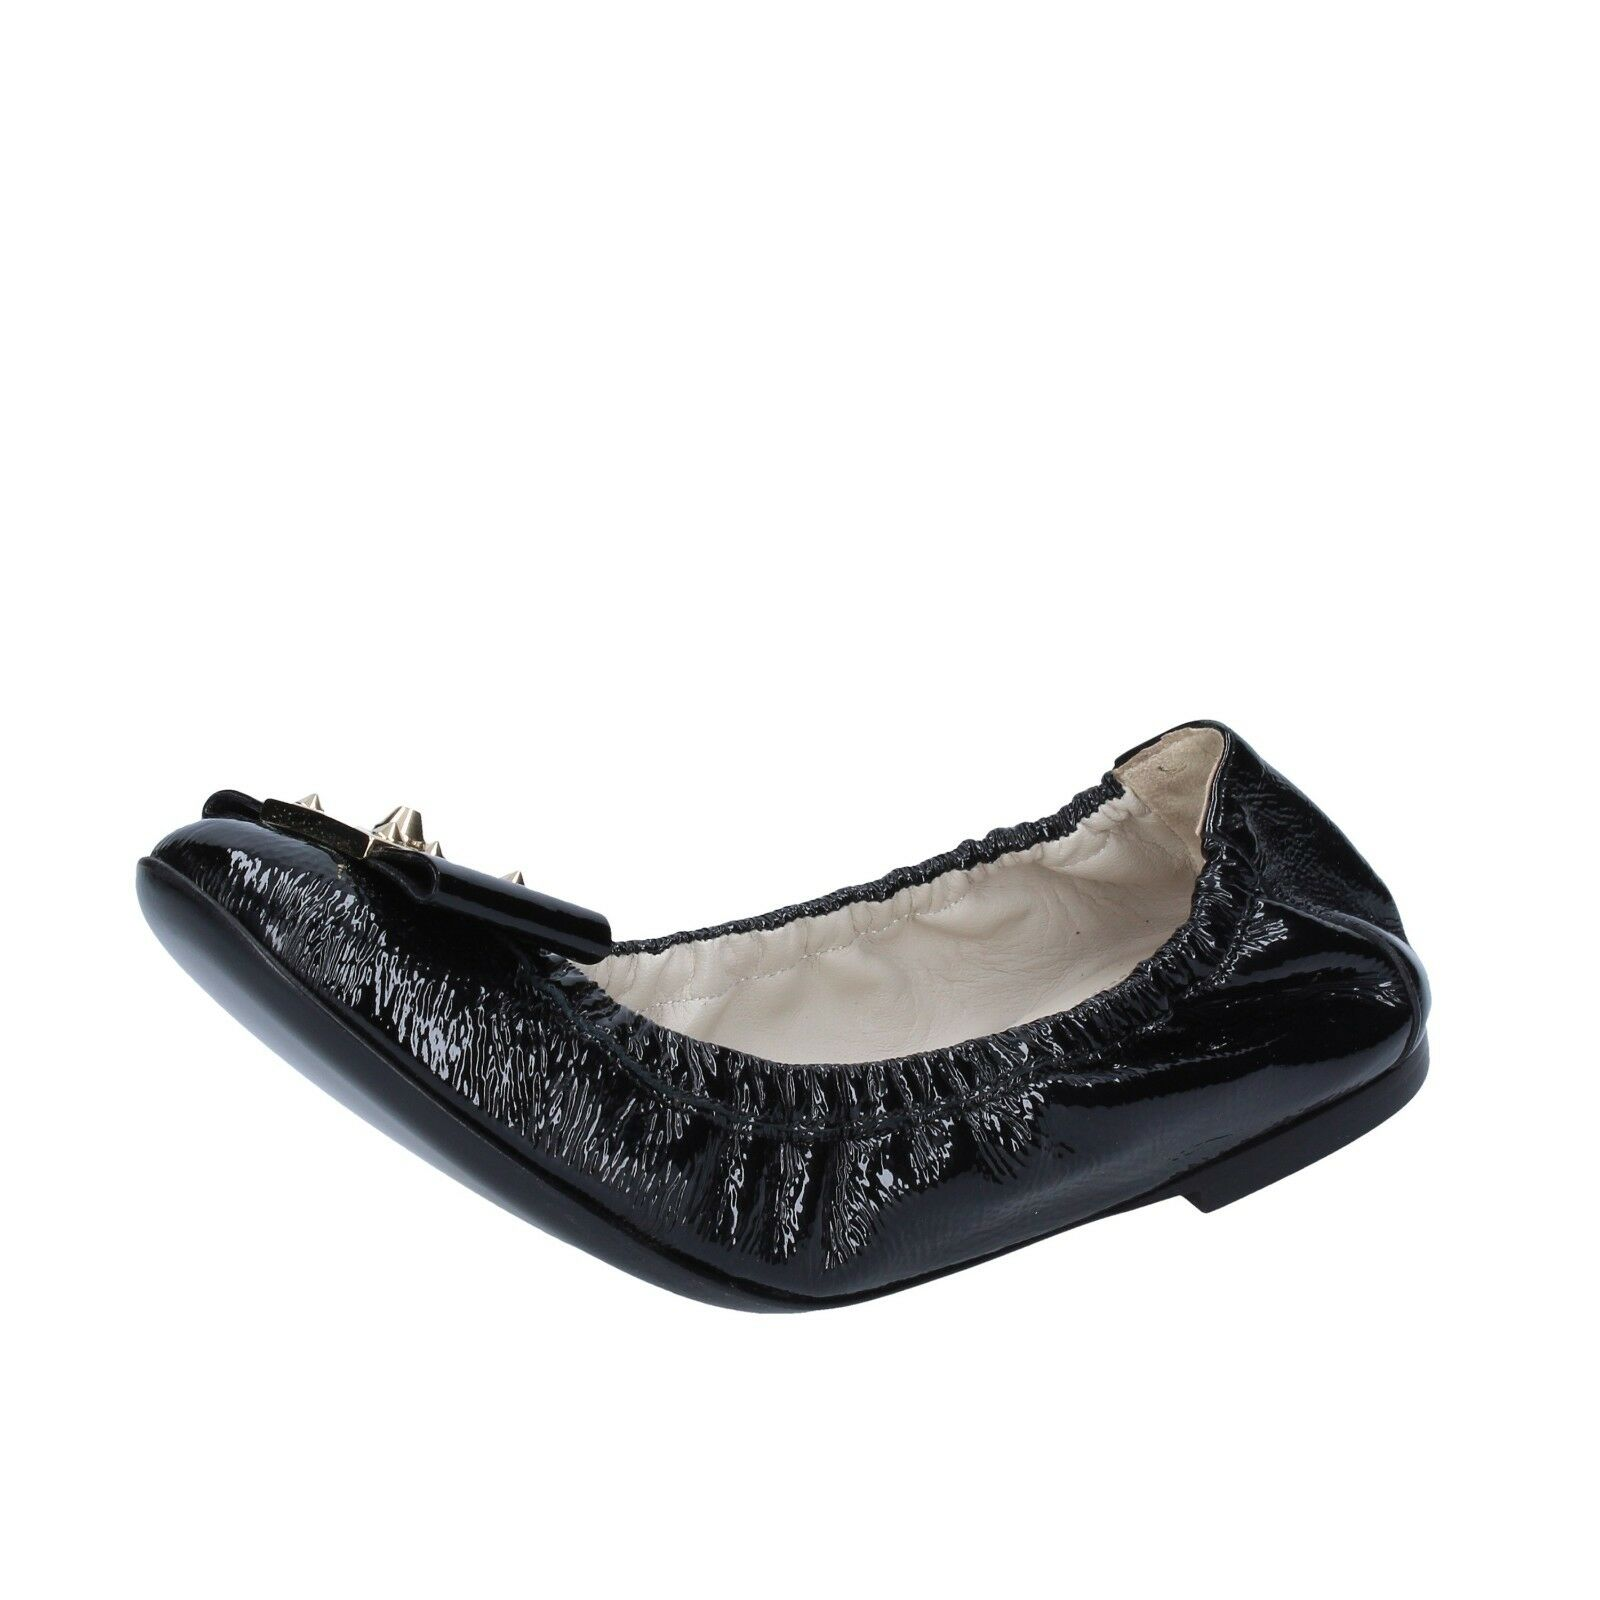 Women's shoes FENDI 6 (EU 36) flats black patent leather leather leather AV285-36 3e86e6